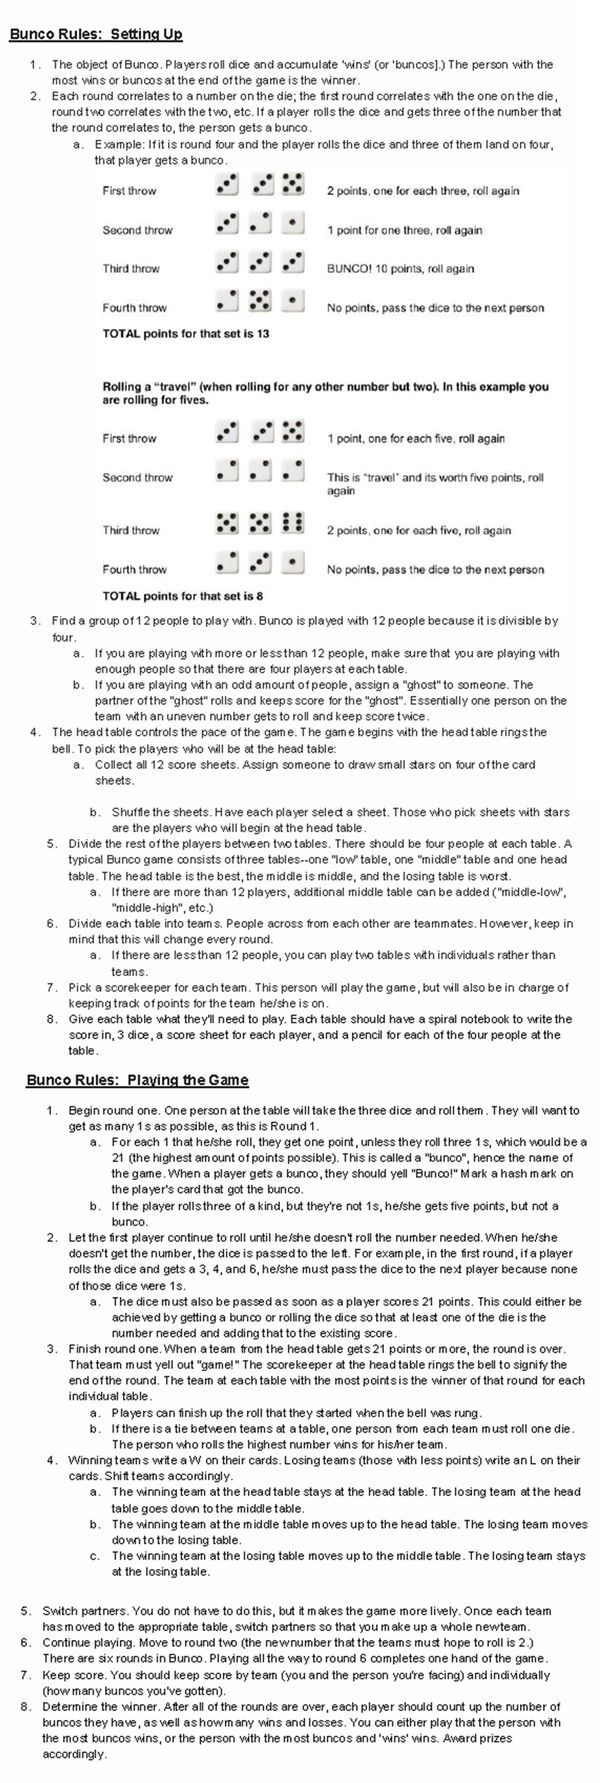 picture about Bunco Rules Printable called Bunco cube recreation suggestions how towards perform